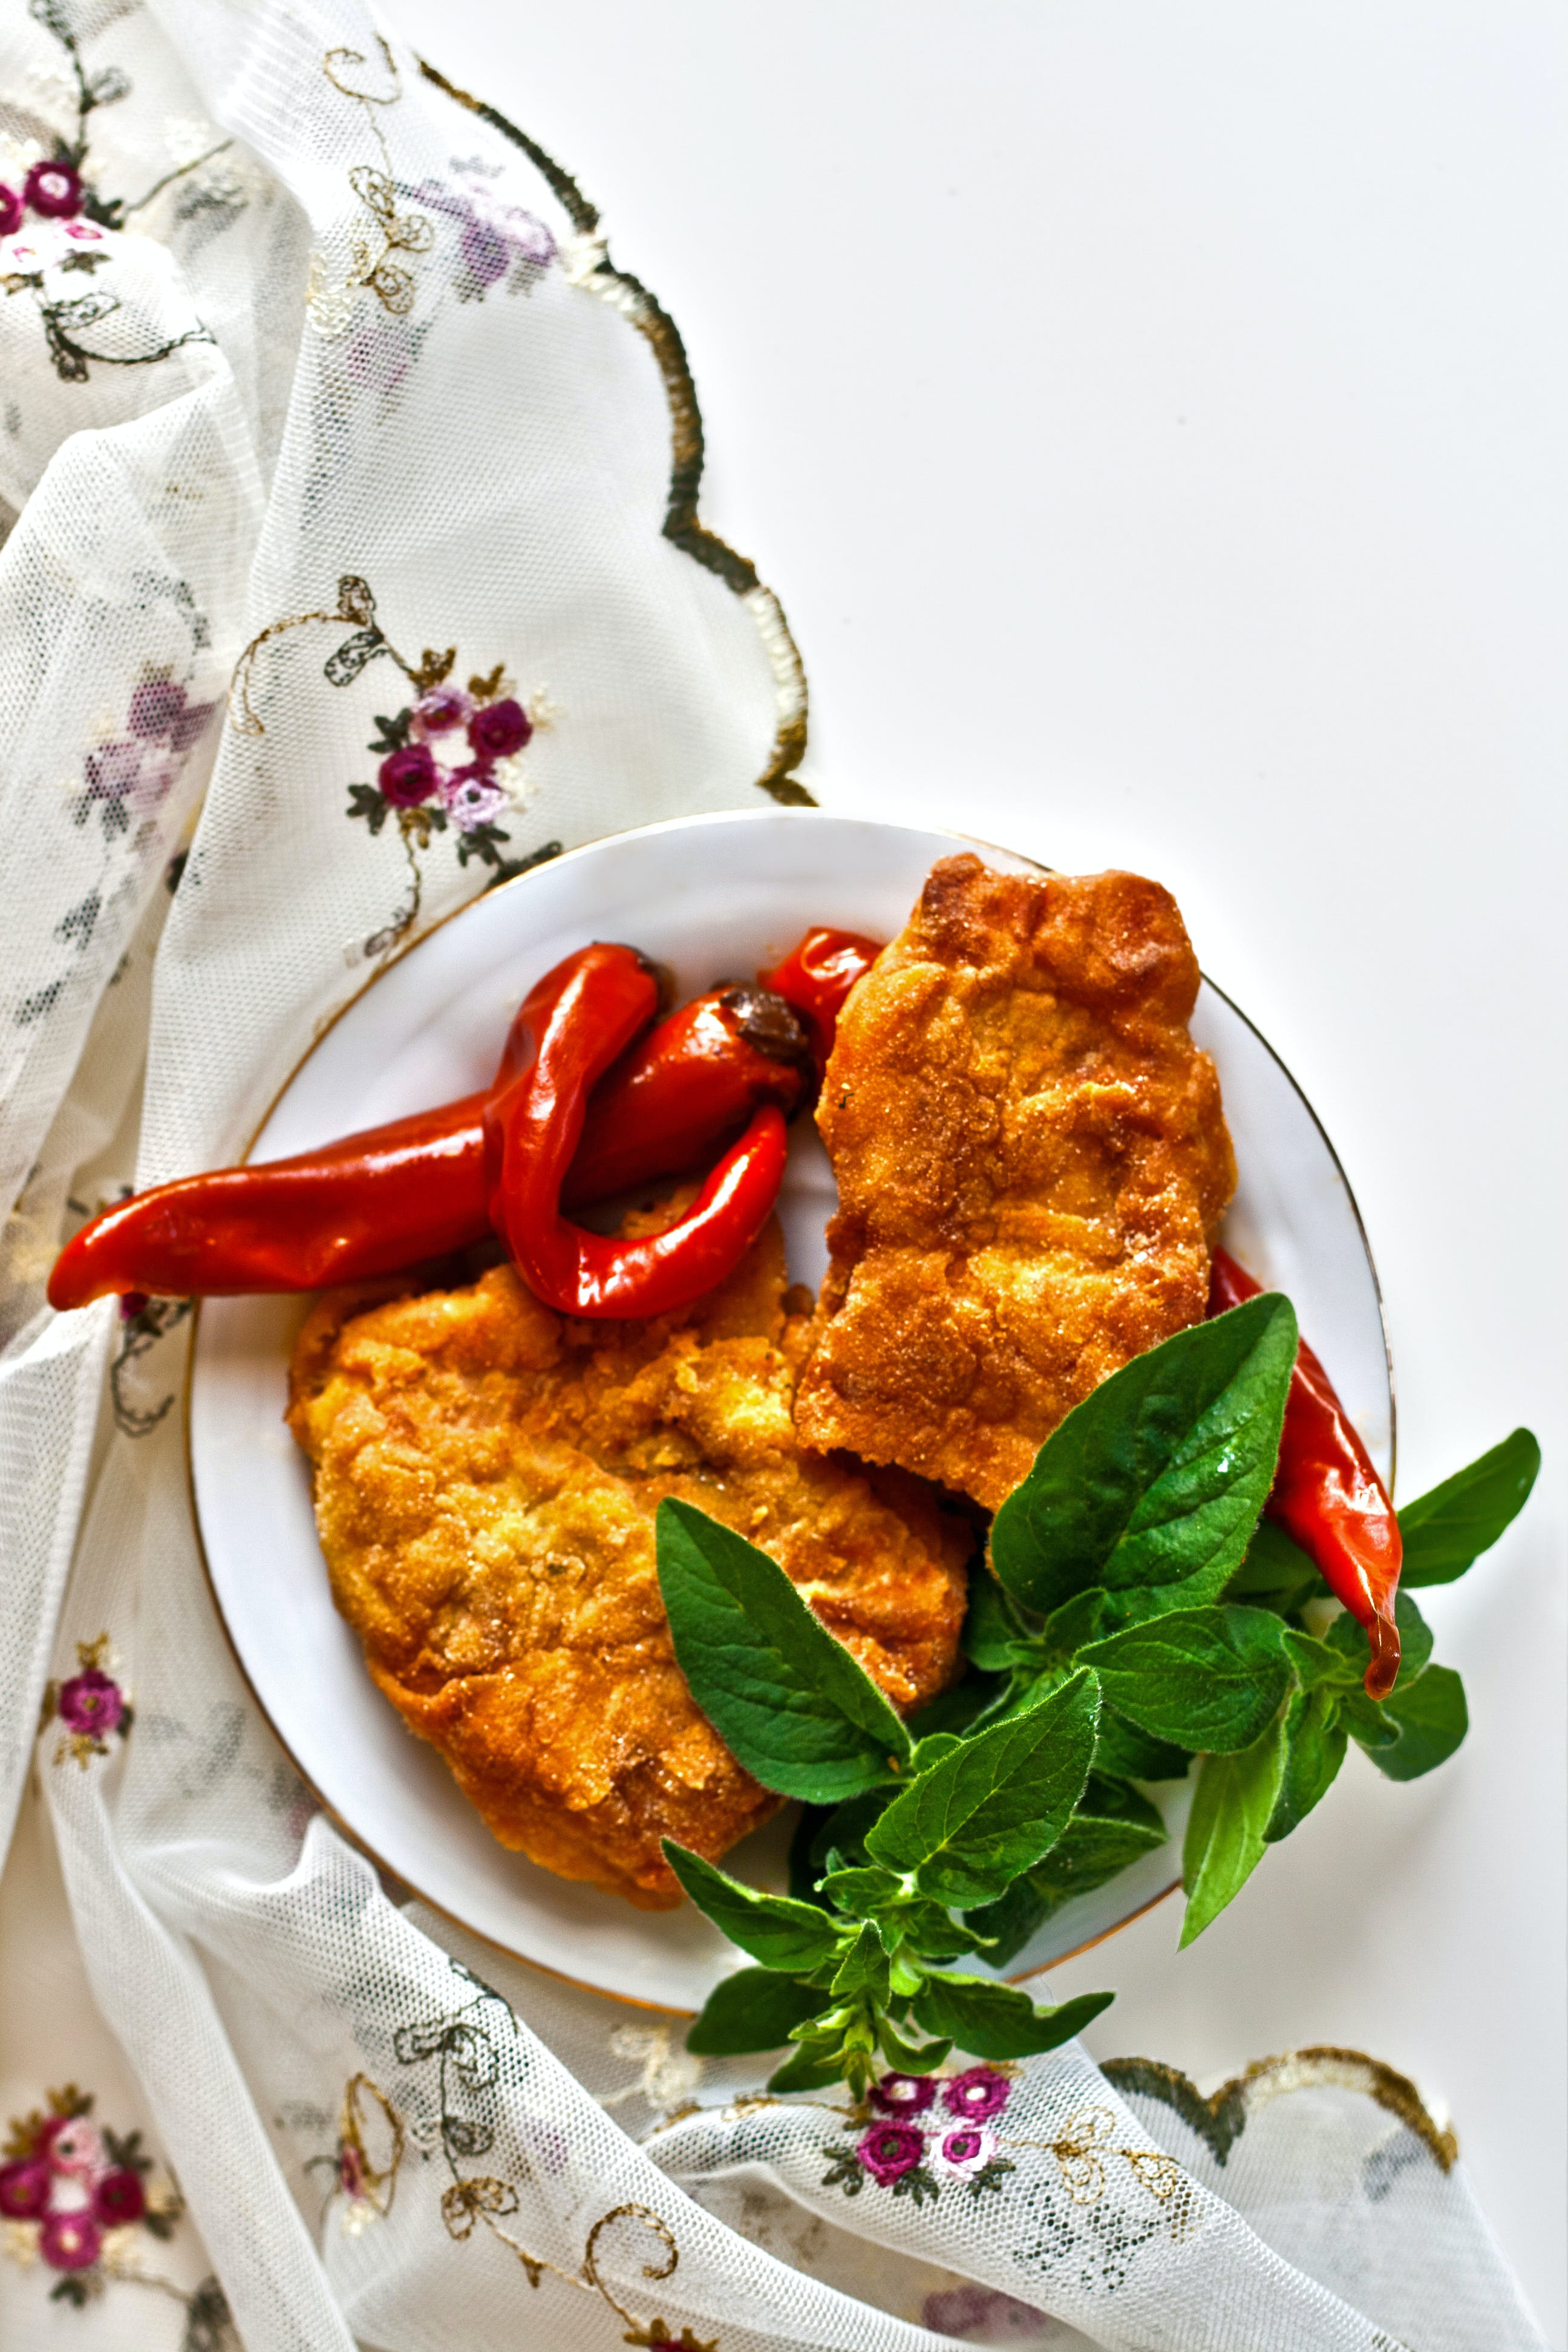 Fried fish with chili pepper and mint II